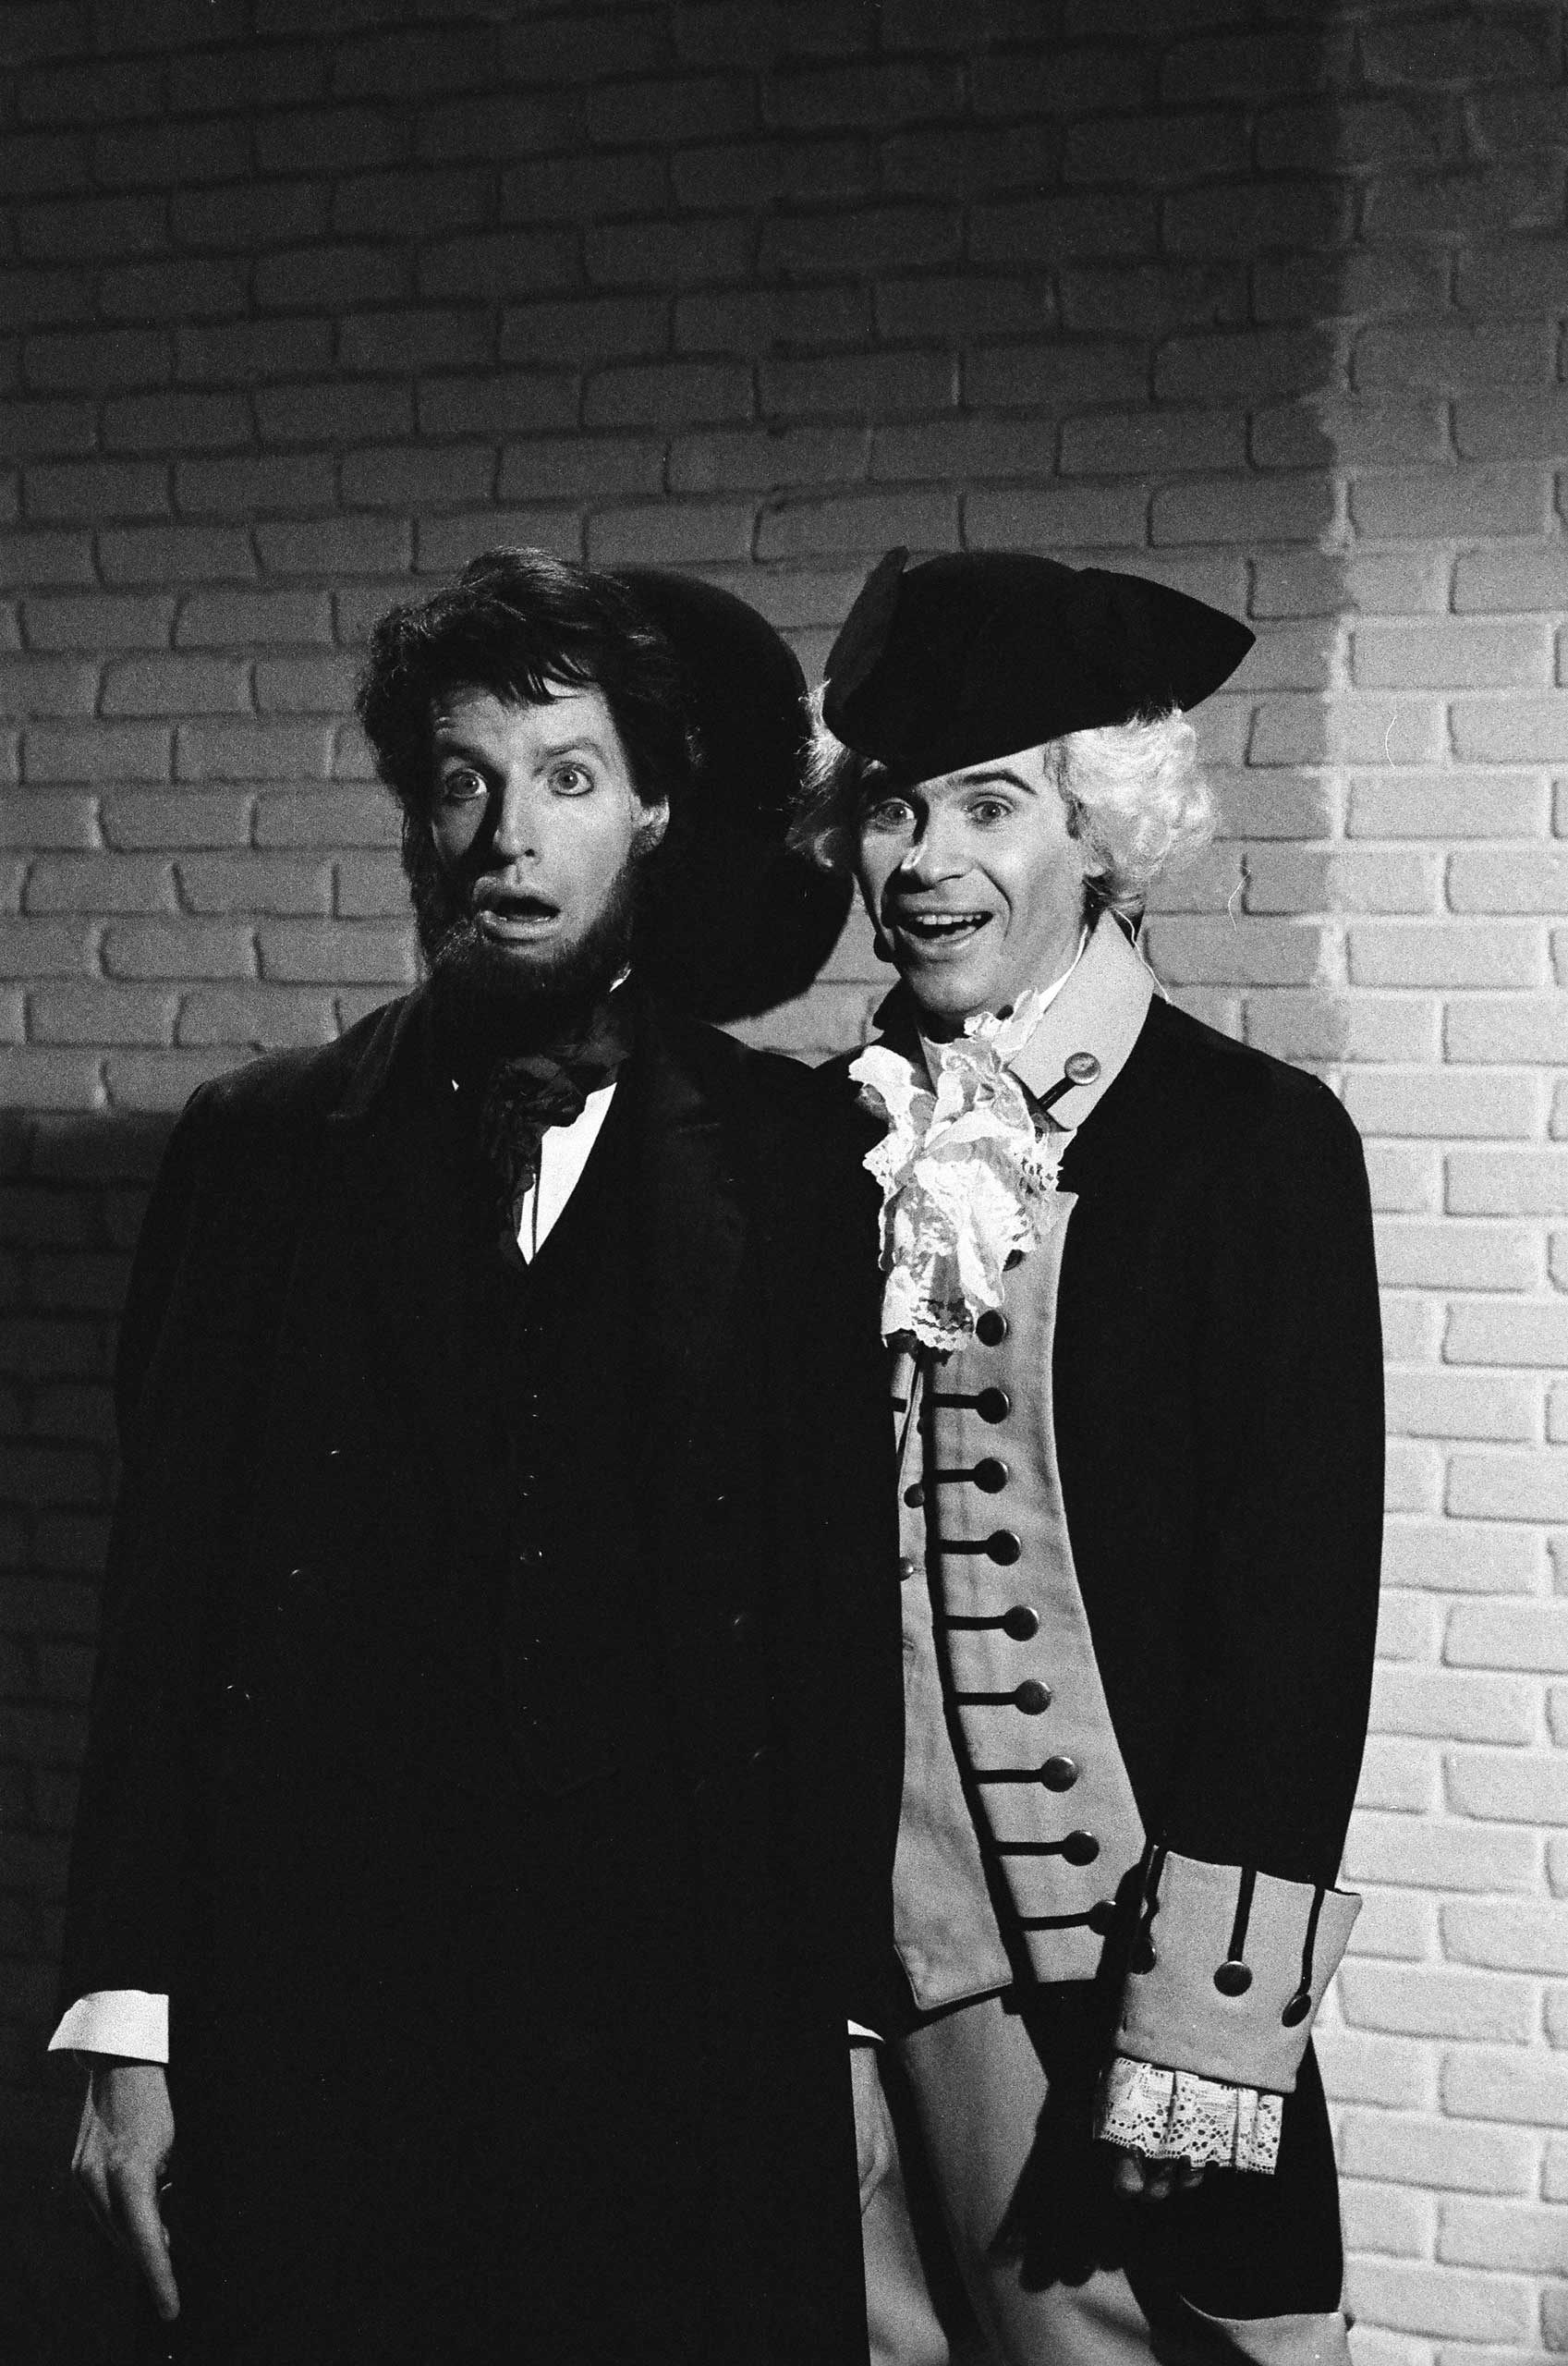 Terry Sweeney as Abraham Lincoln and Dennis Miller as George Washington during the 'Jack's Discount Emporium' skit on Jan. 18, 1986.